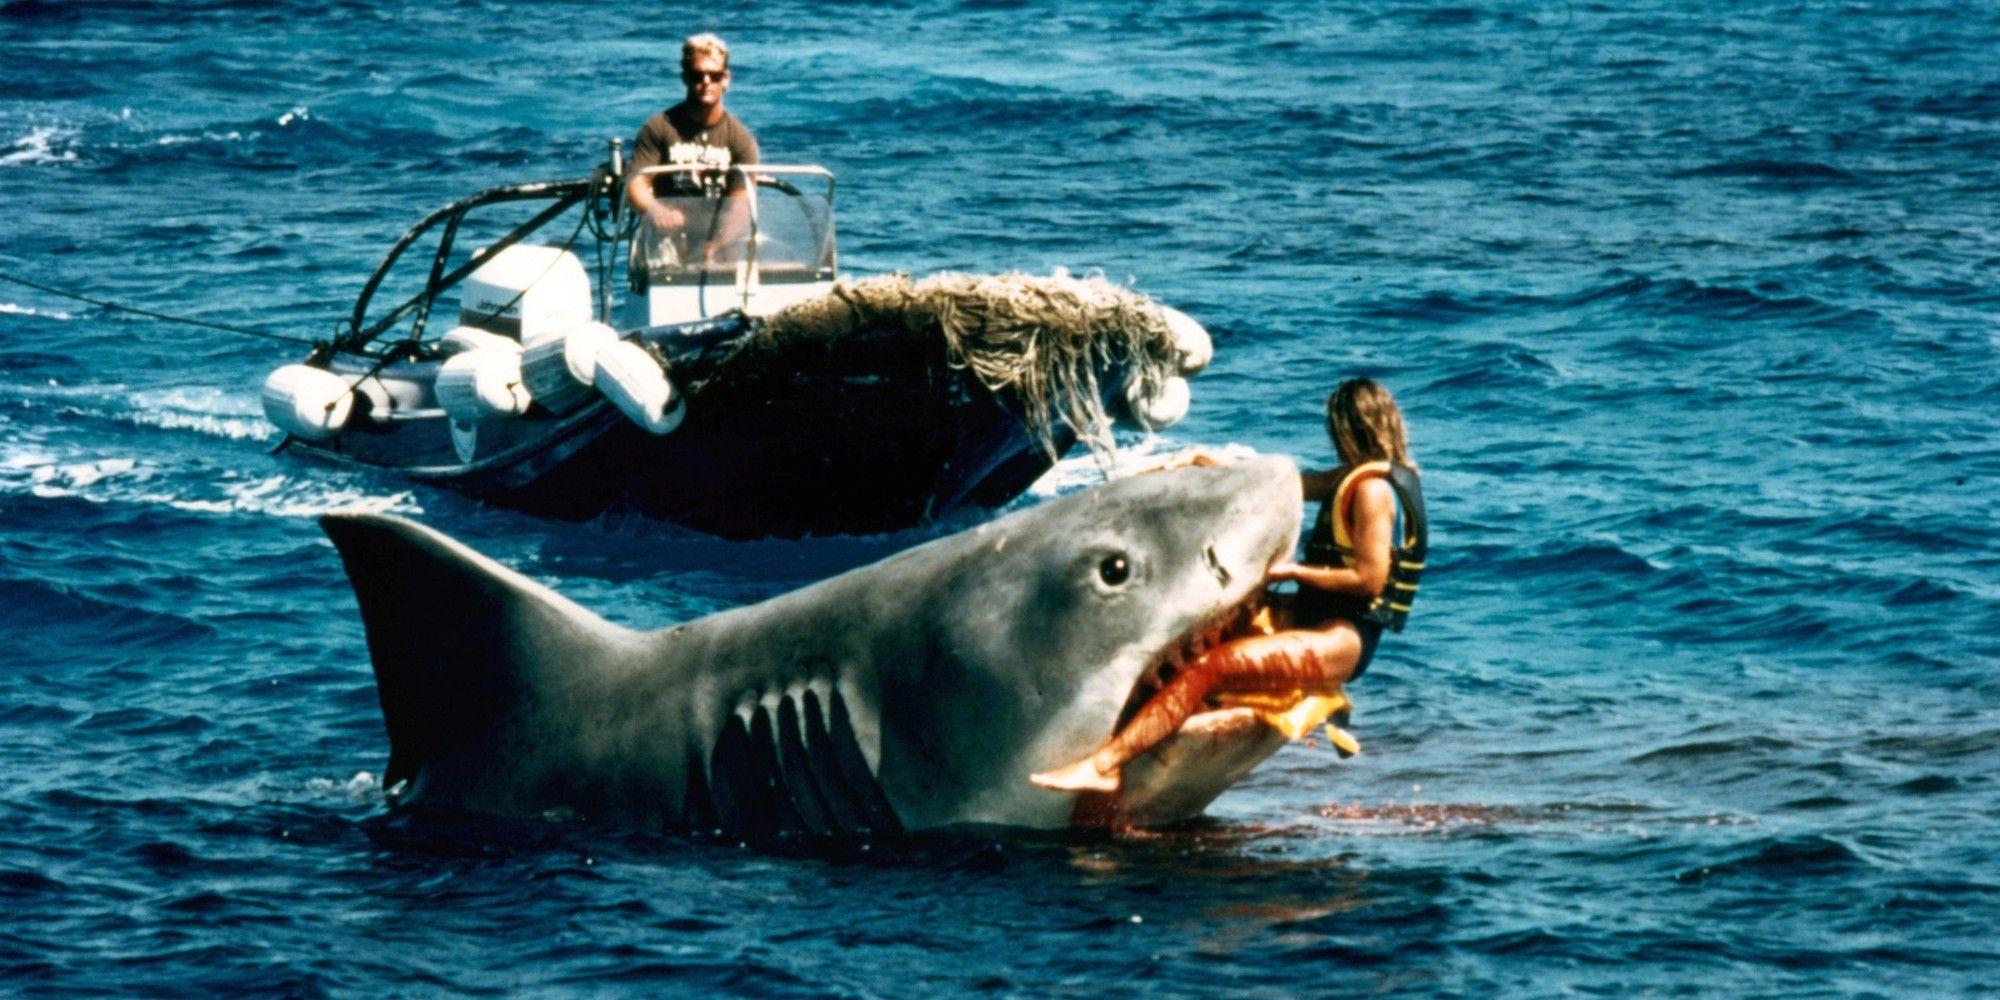 jaws by steven spielberg essay 1-16 of 163 results for movie: jaws by steven spielberg click try in your search results to watch thousands of movies and tv shows at no additional cost with an amazon prime membership jaws.